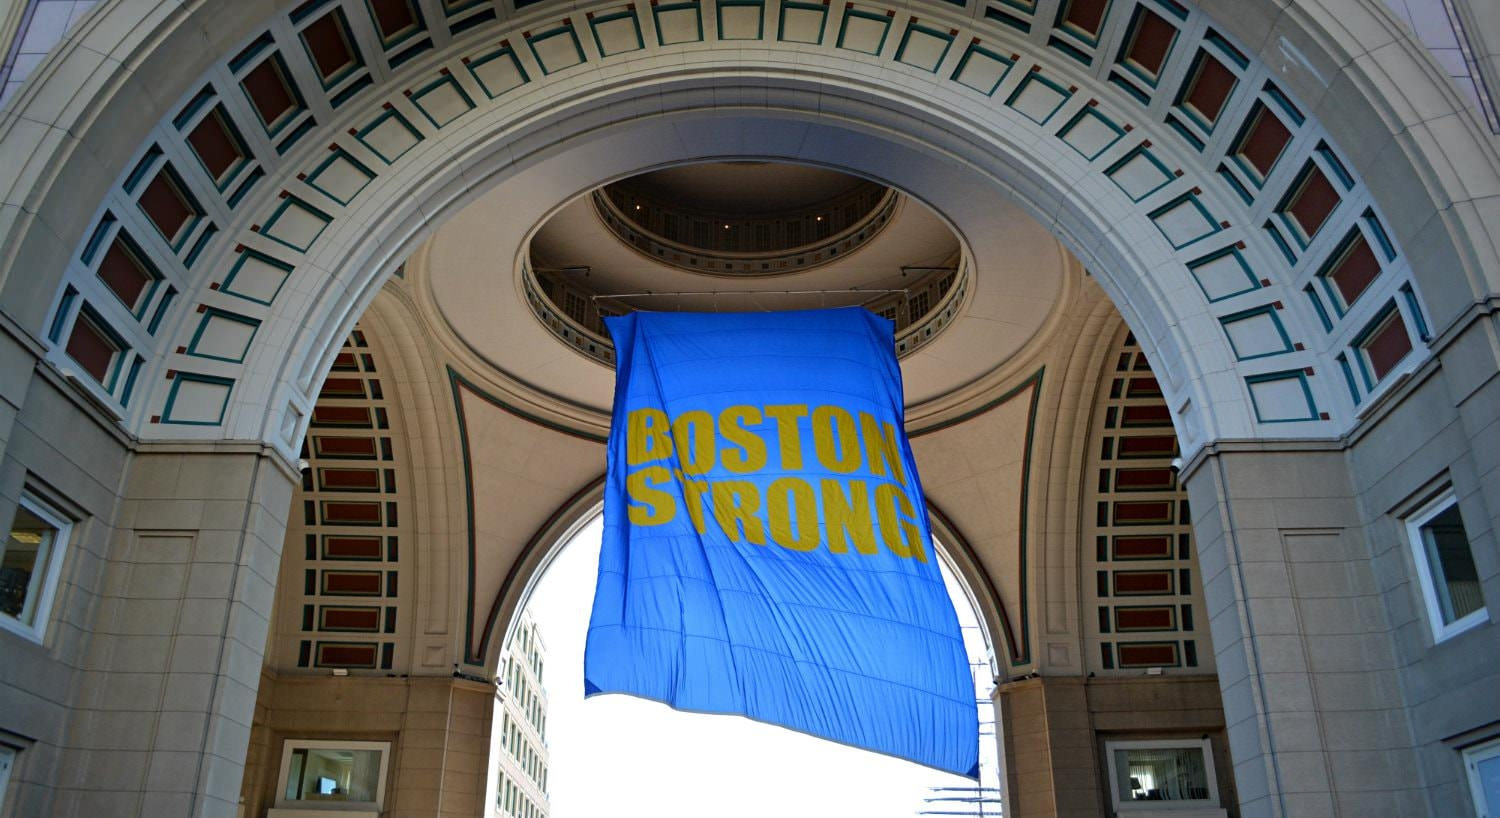 Blue and yellow Boston Strong flag hanging from an ornate stone atrium